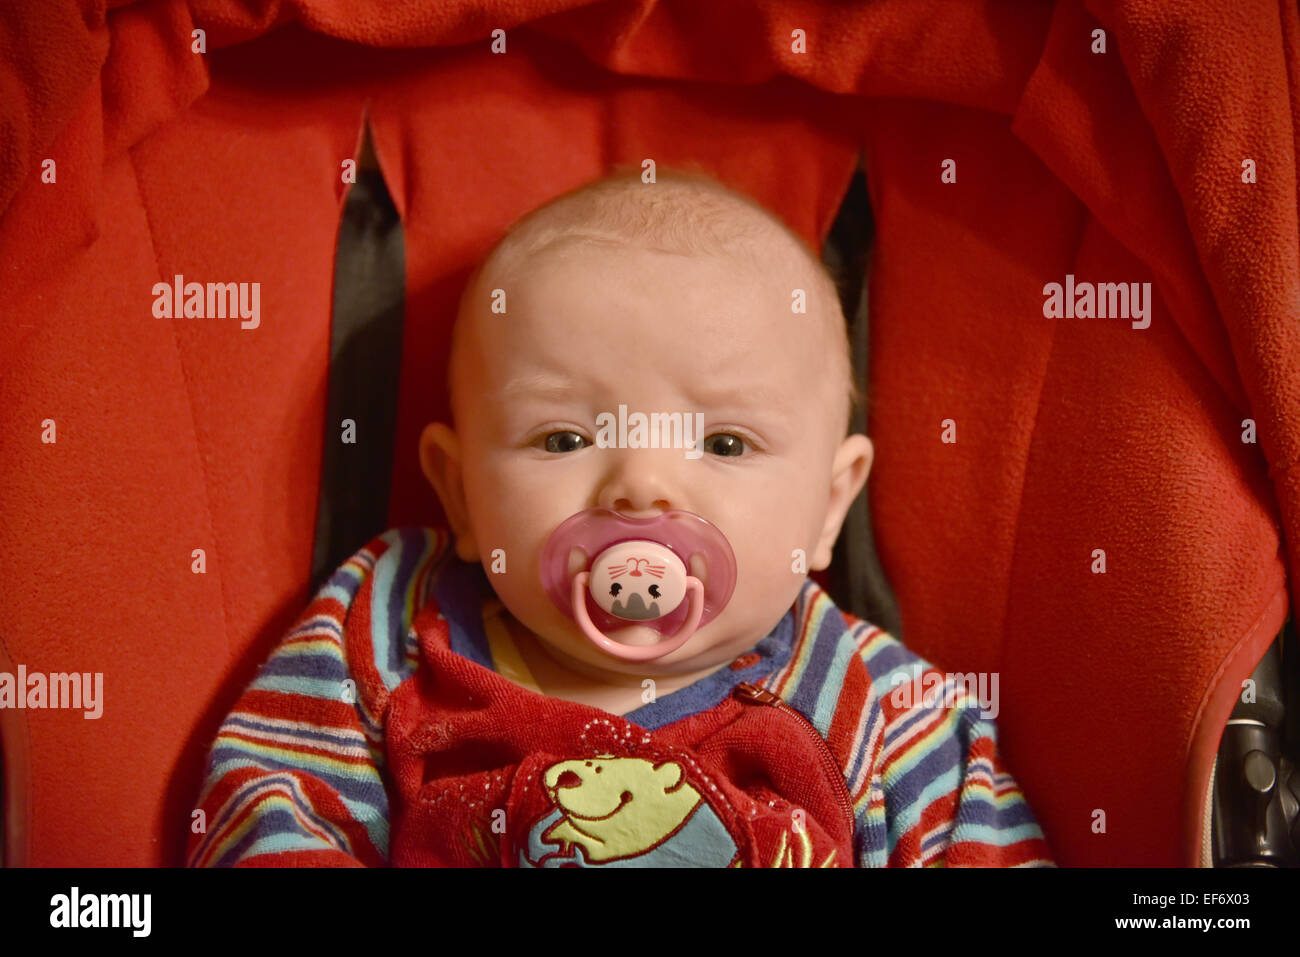 A baby girl with a dummy in her mouth - Stock Image